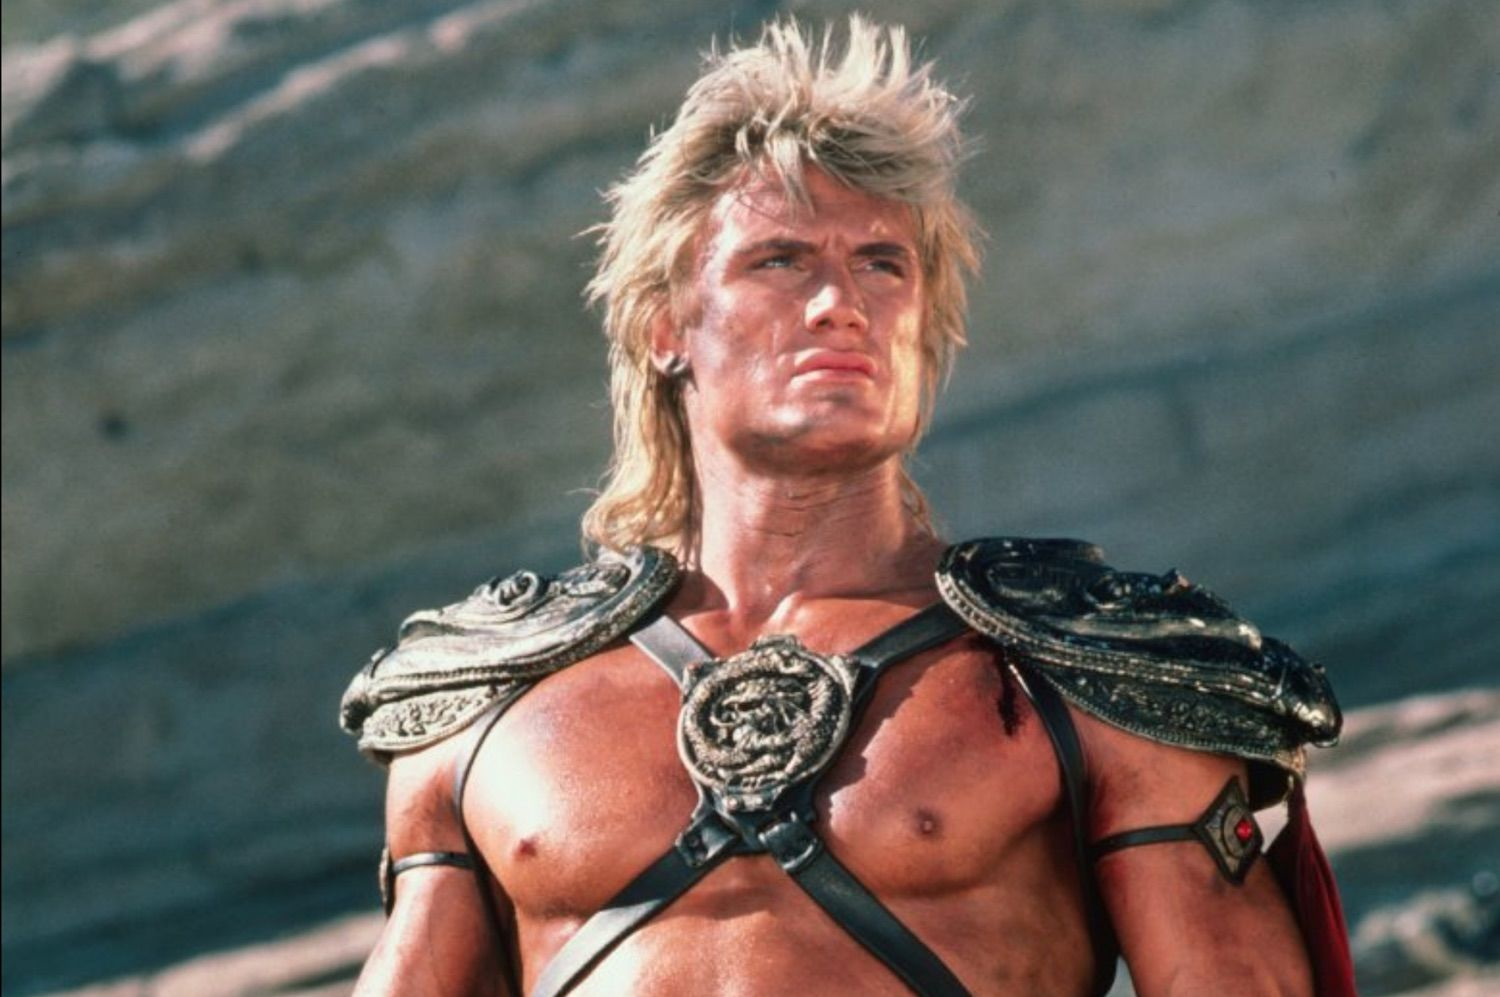 he man hed 30 Films From The 80s That Are So Bad They're Actually Good